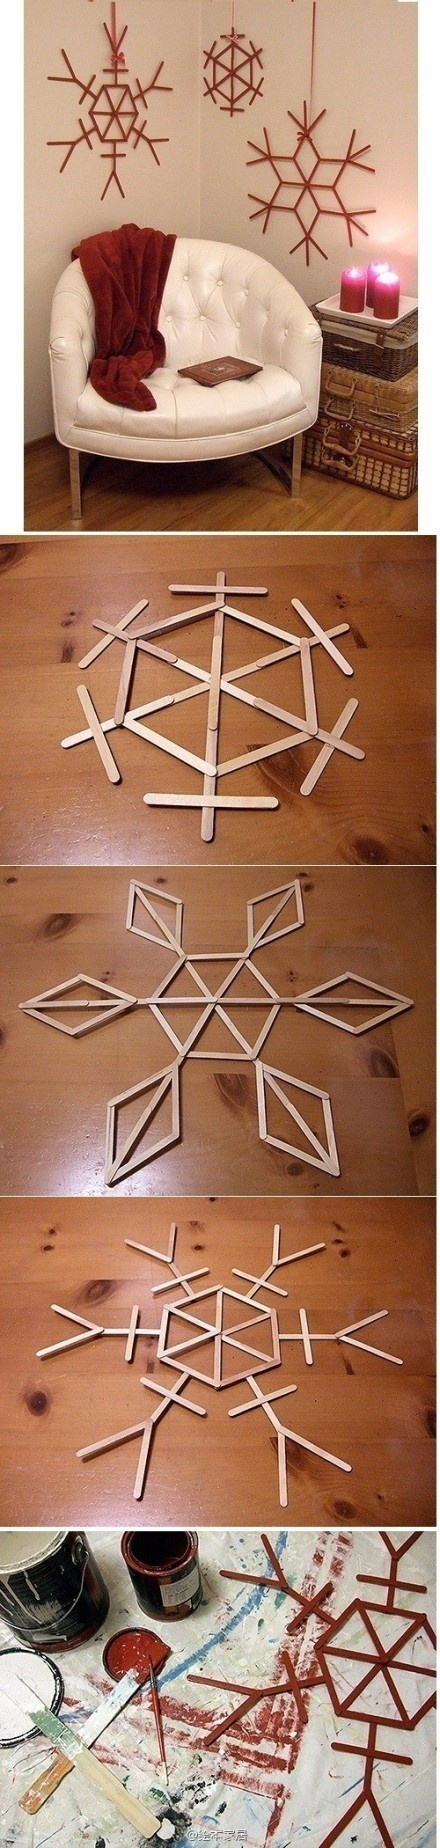 Popsicle Snowflake fun for the kids!